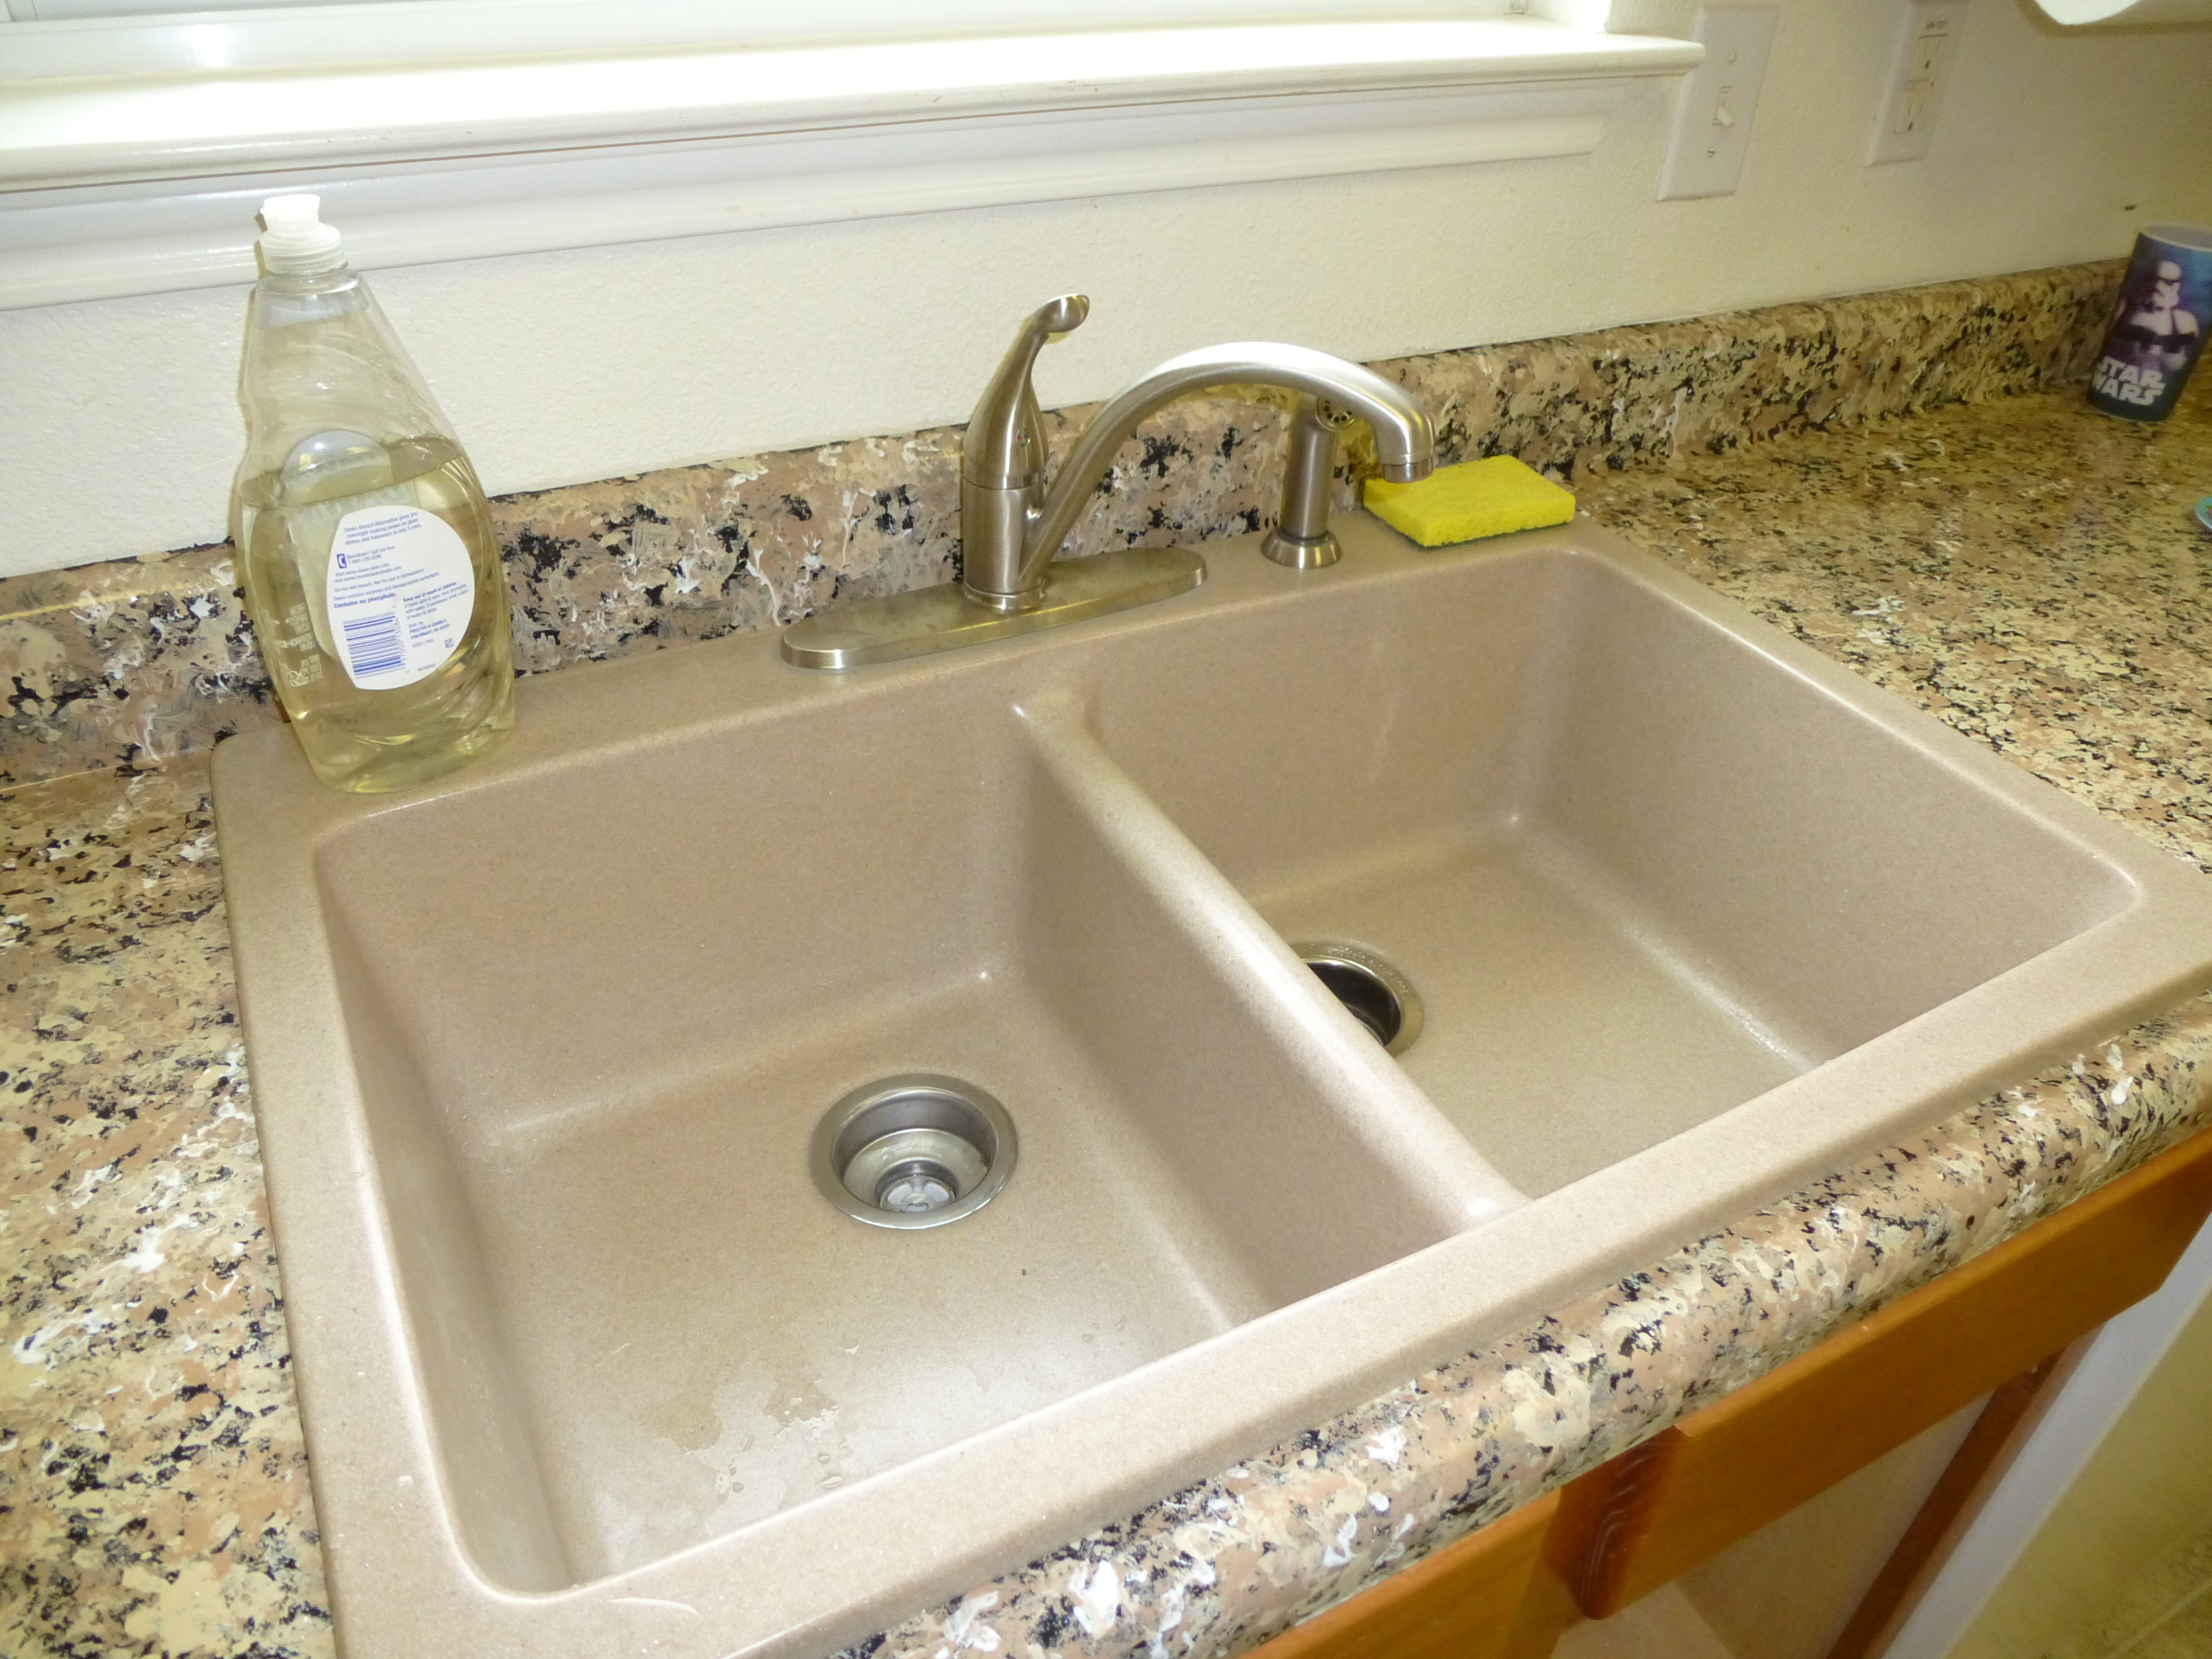 How To Cut A Hole In Granite Countertop How To Cut A Sink Hole In Granite Workers Cutting Sink